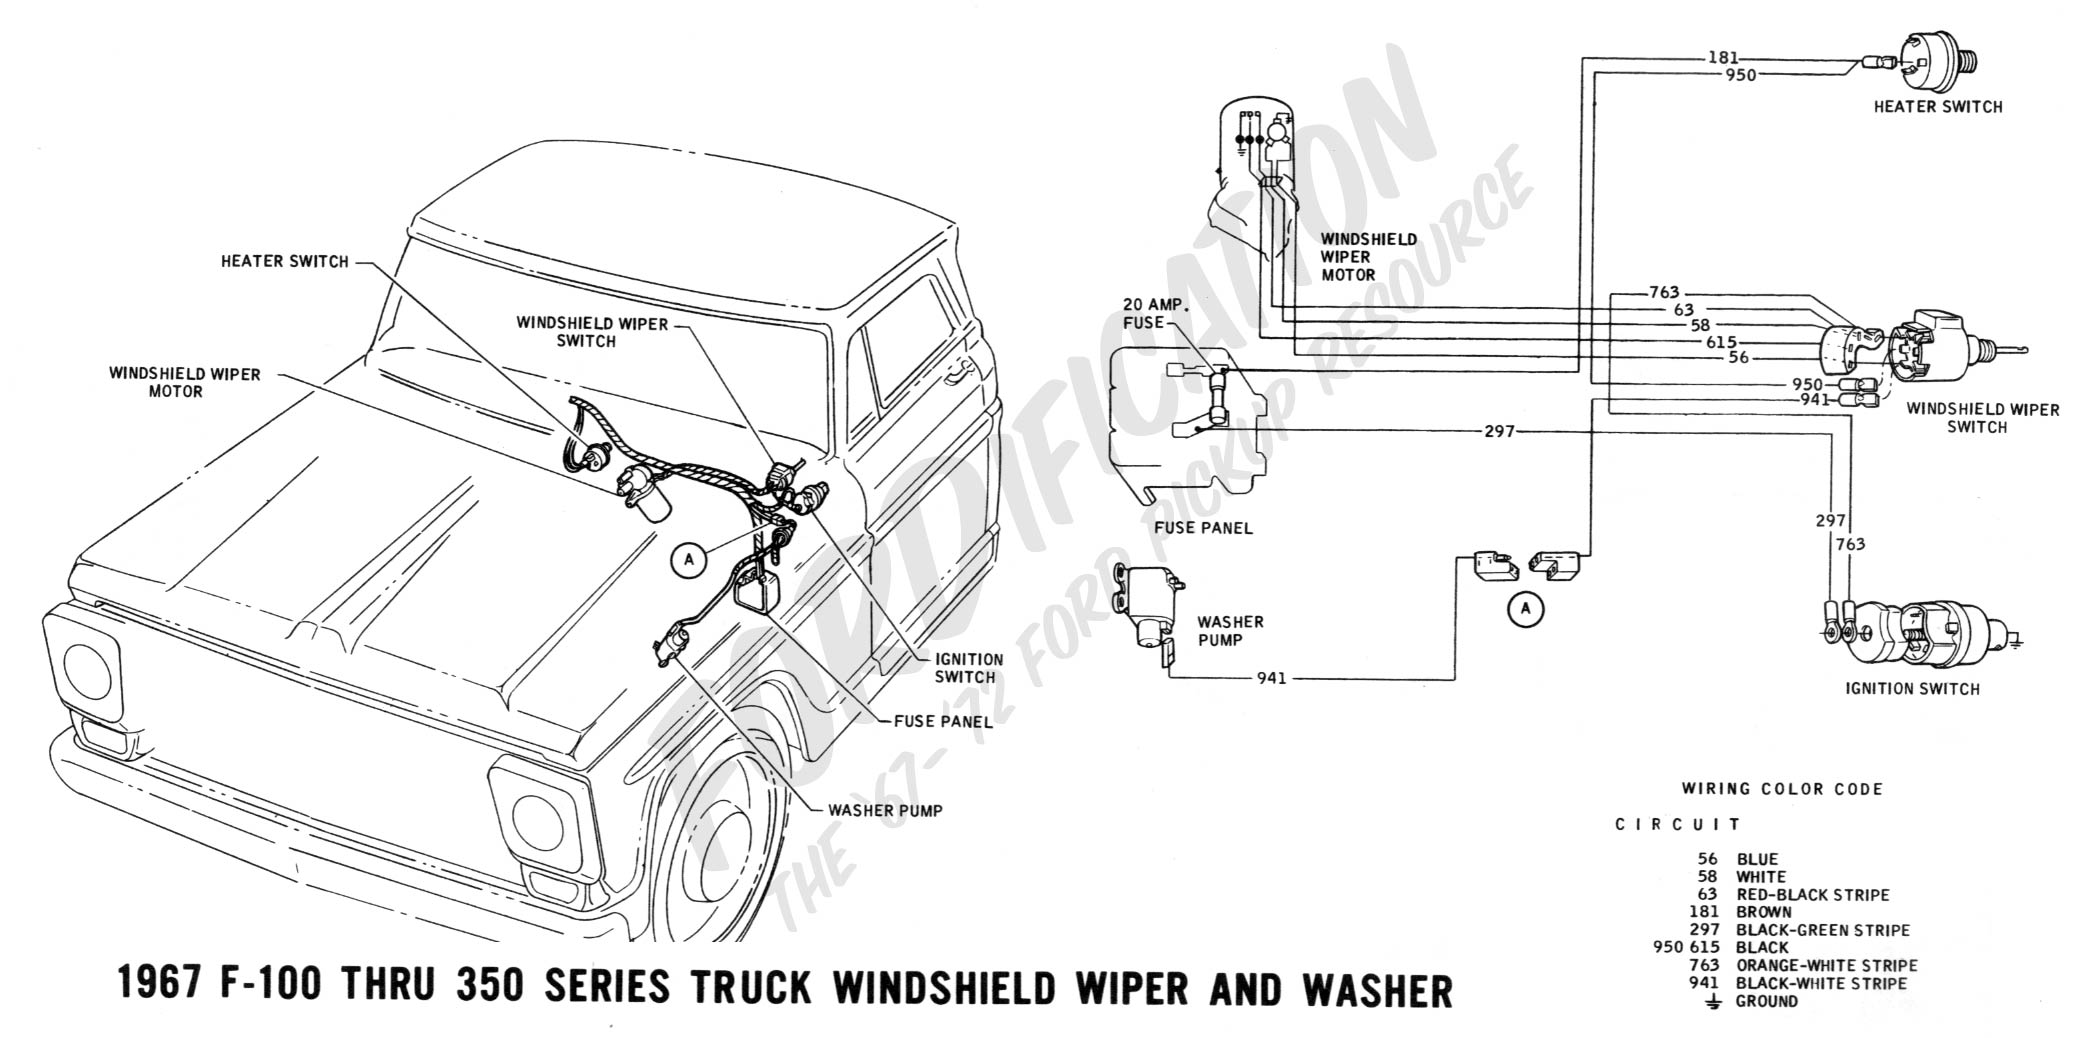 1999 chevy cavalier headlight wiring diagram Images Gallery. wiring diagram  for 1995 ford f350 wiper motor 1995